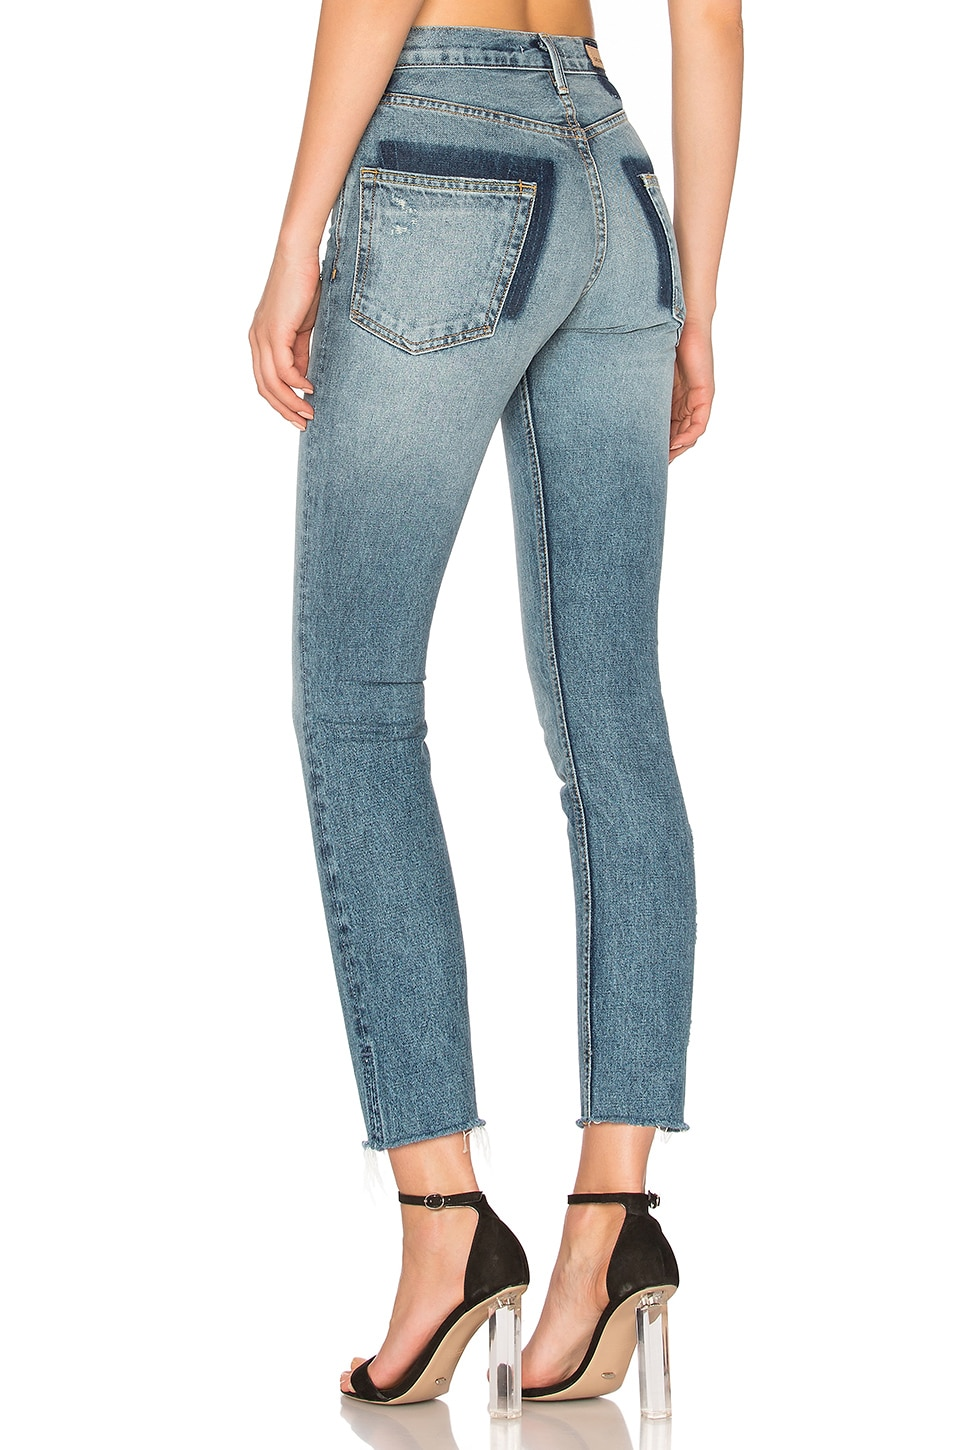 GRLFRND PETITE Karolina High-Rise Skinny Jean in Whole Lotta Love